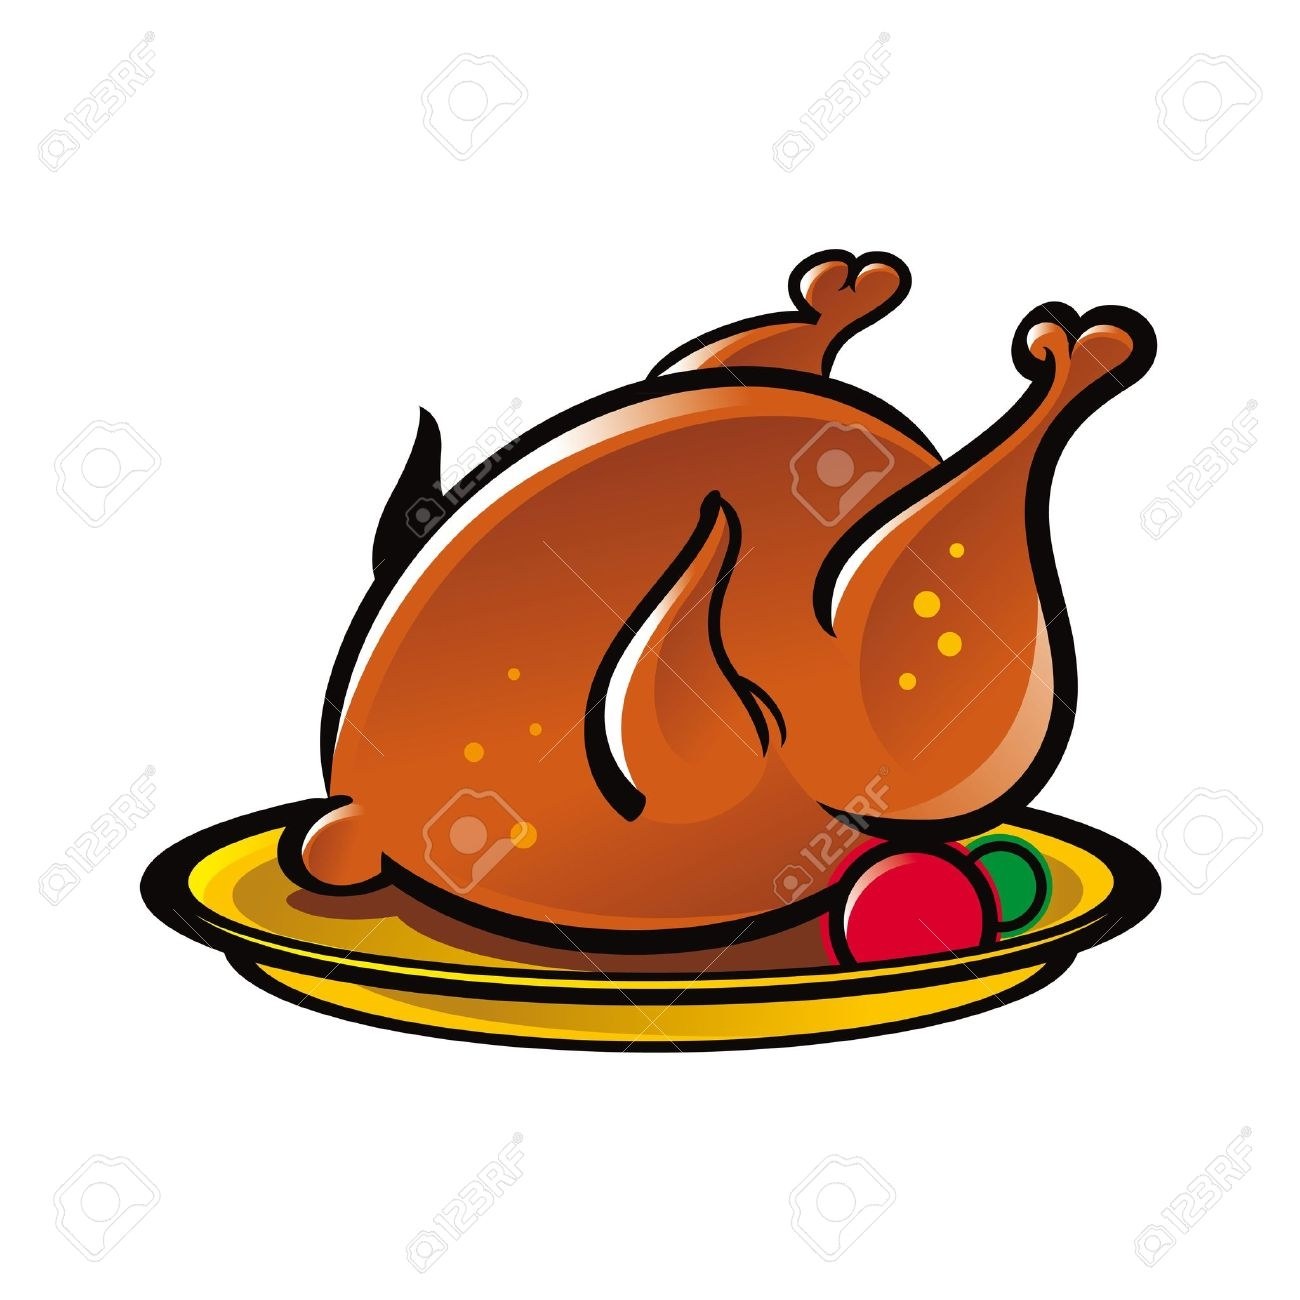 Chicken On A Plate Clipart.